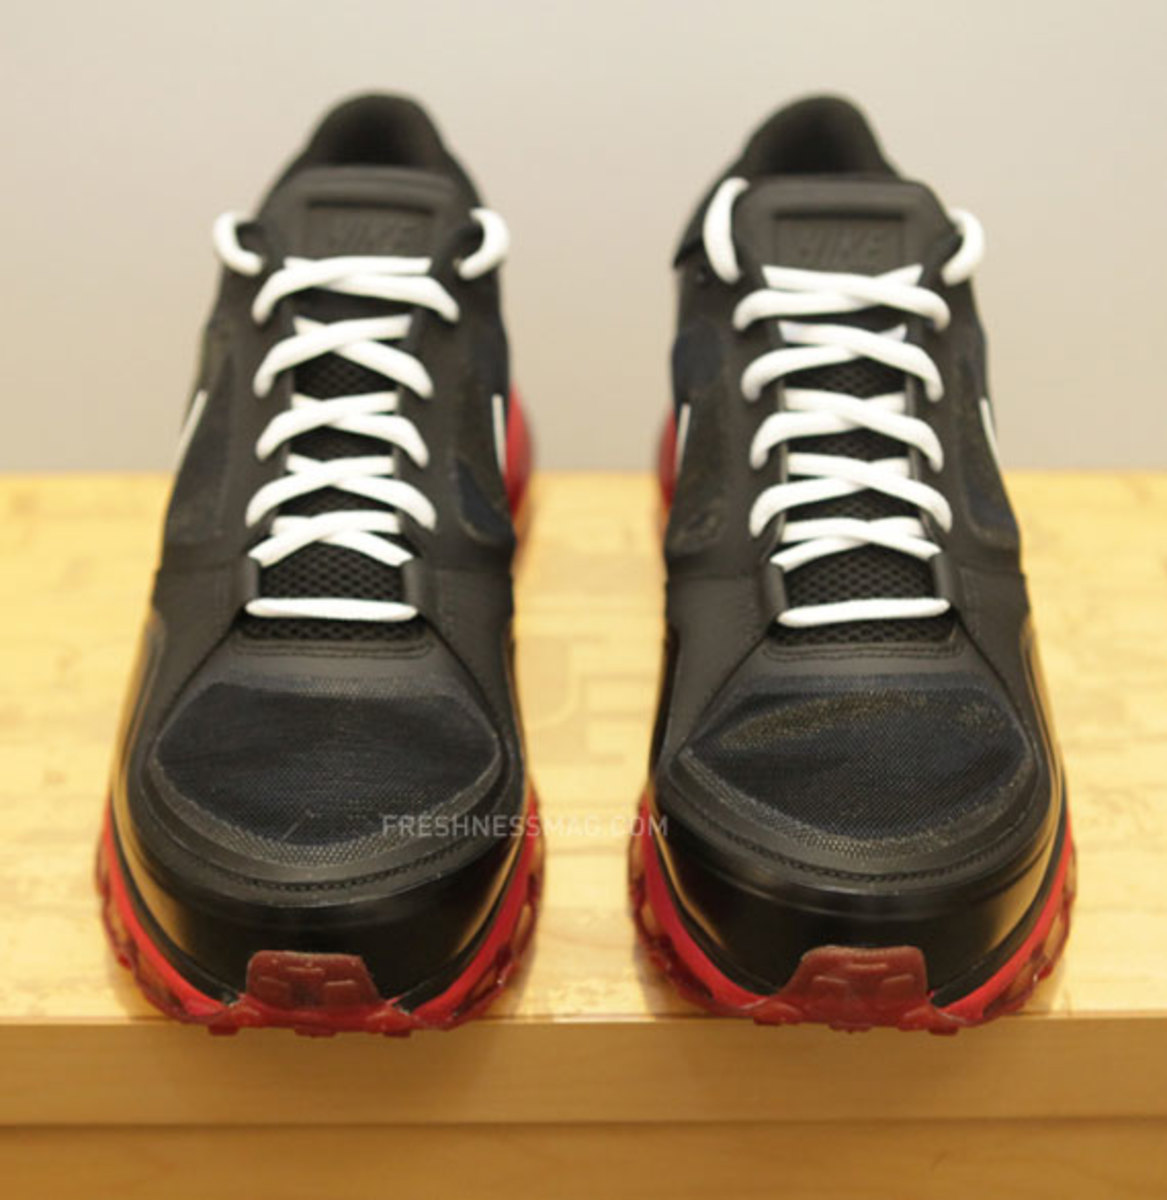 nike-trainer-1.3-max-jerry-rice-pe-05